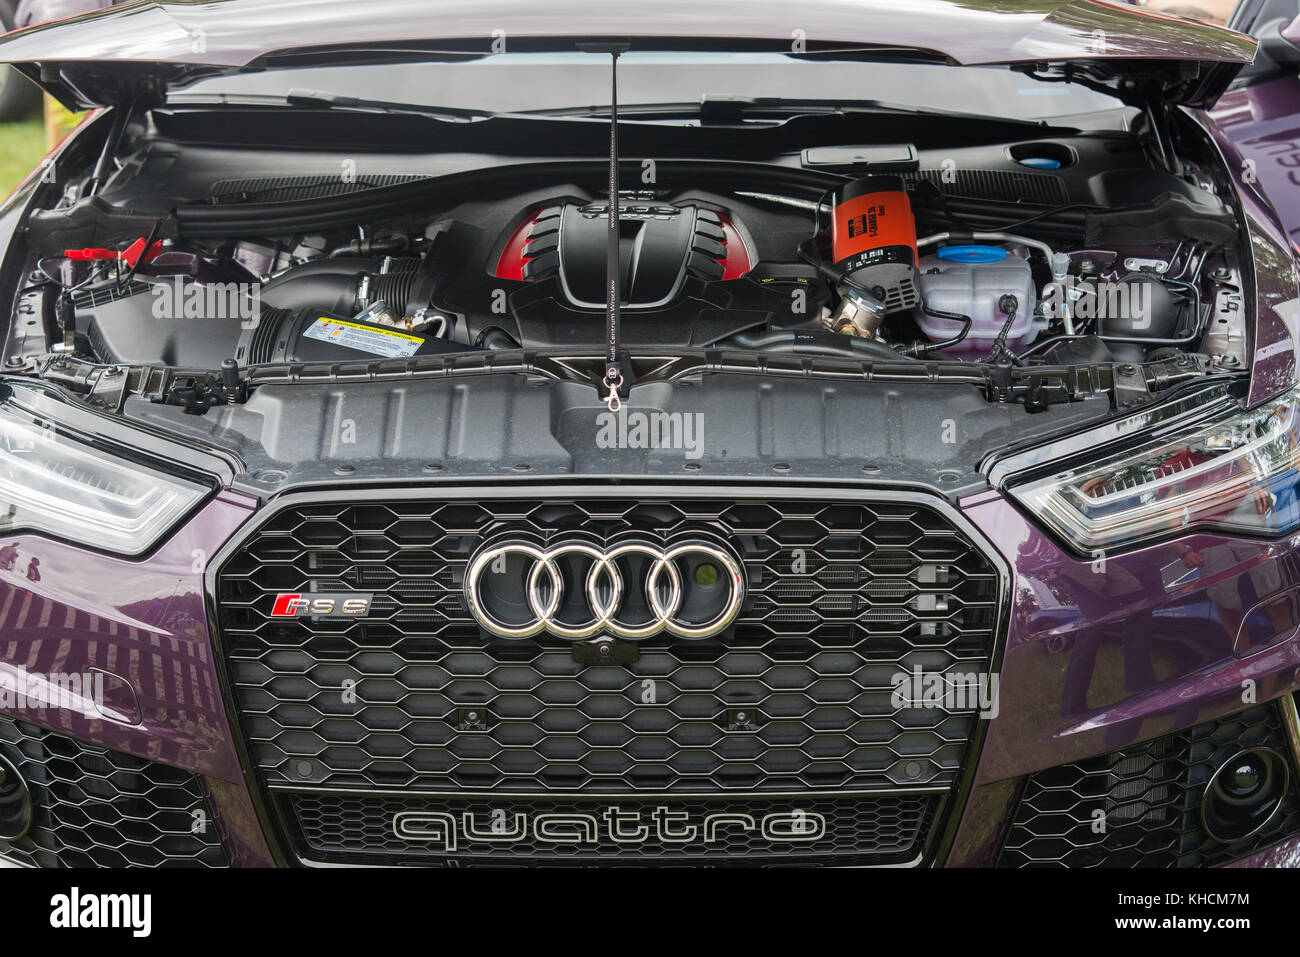 August 19 2017, Wroclaw, Poland - Audi Engine on motoshow classic - Stock Image